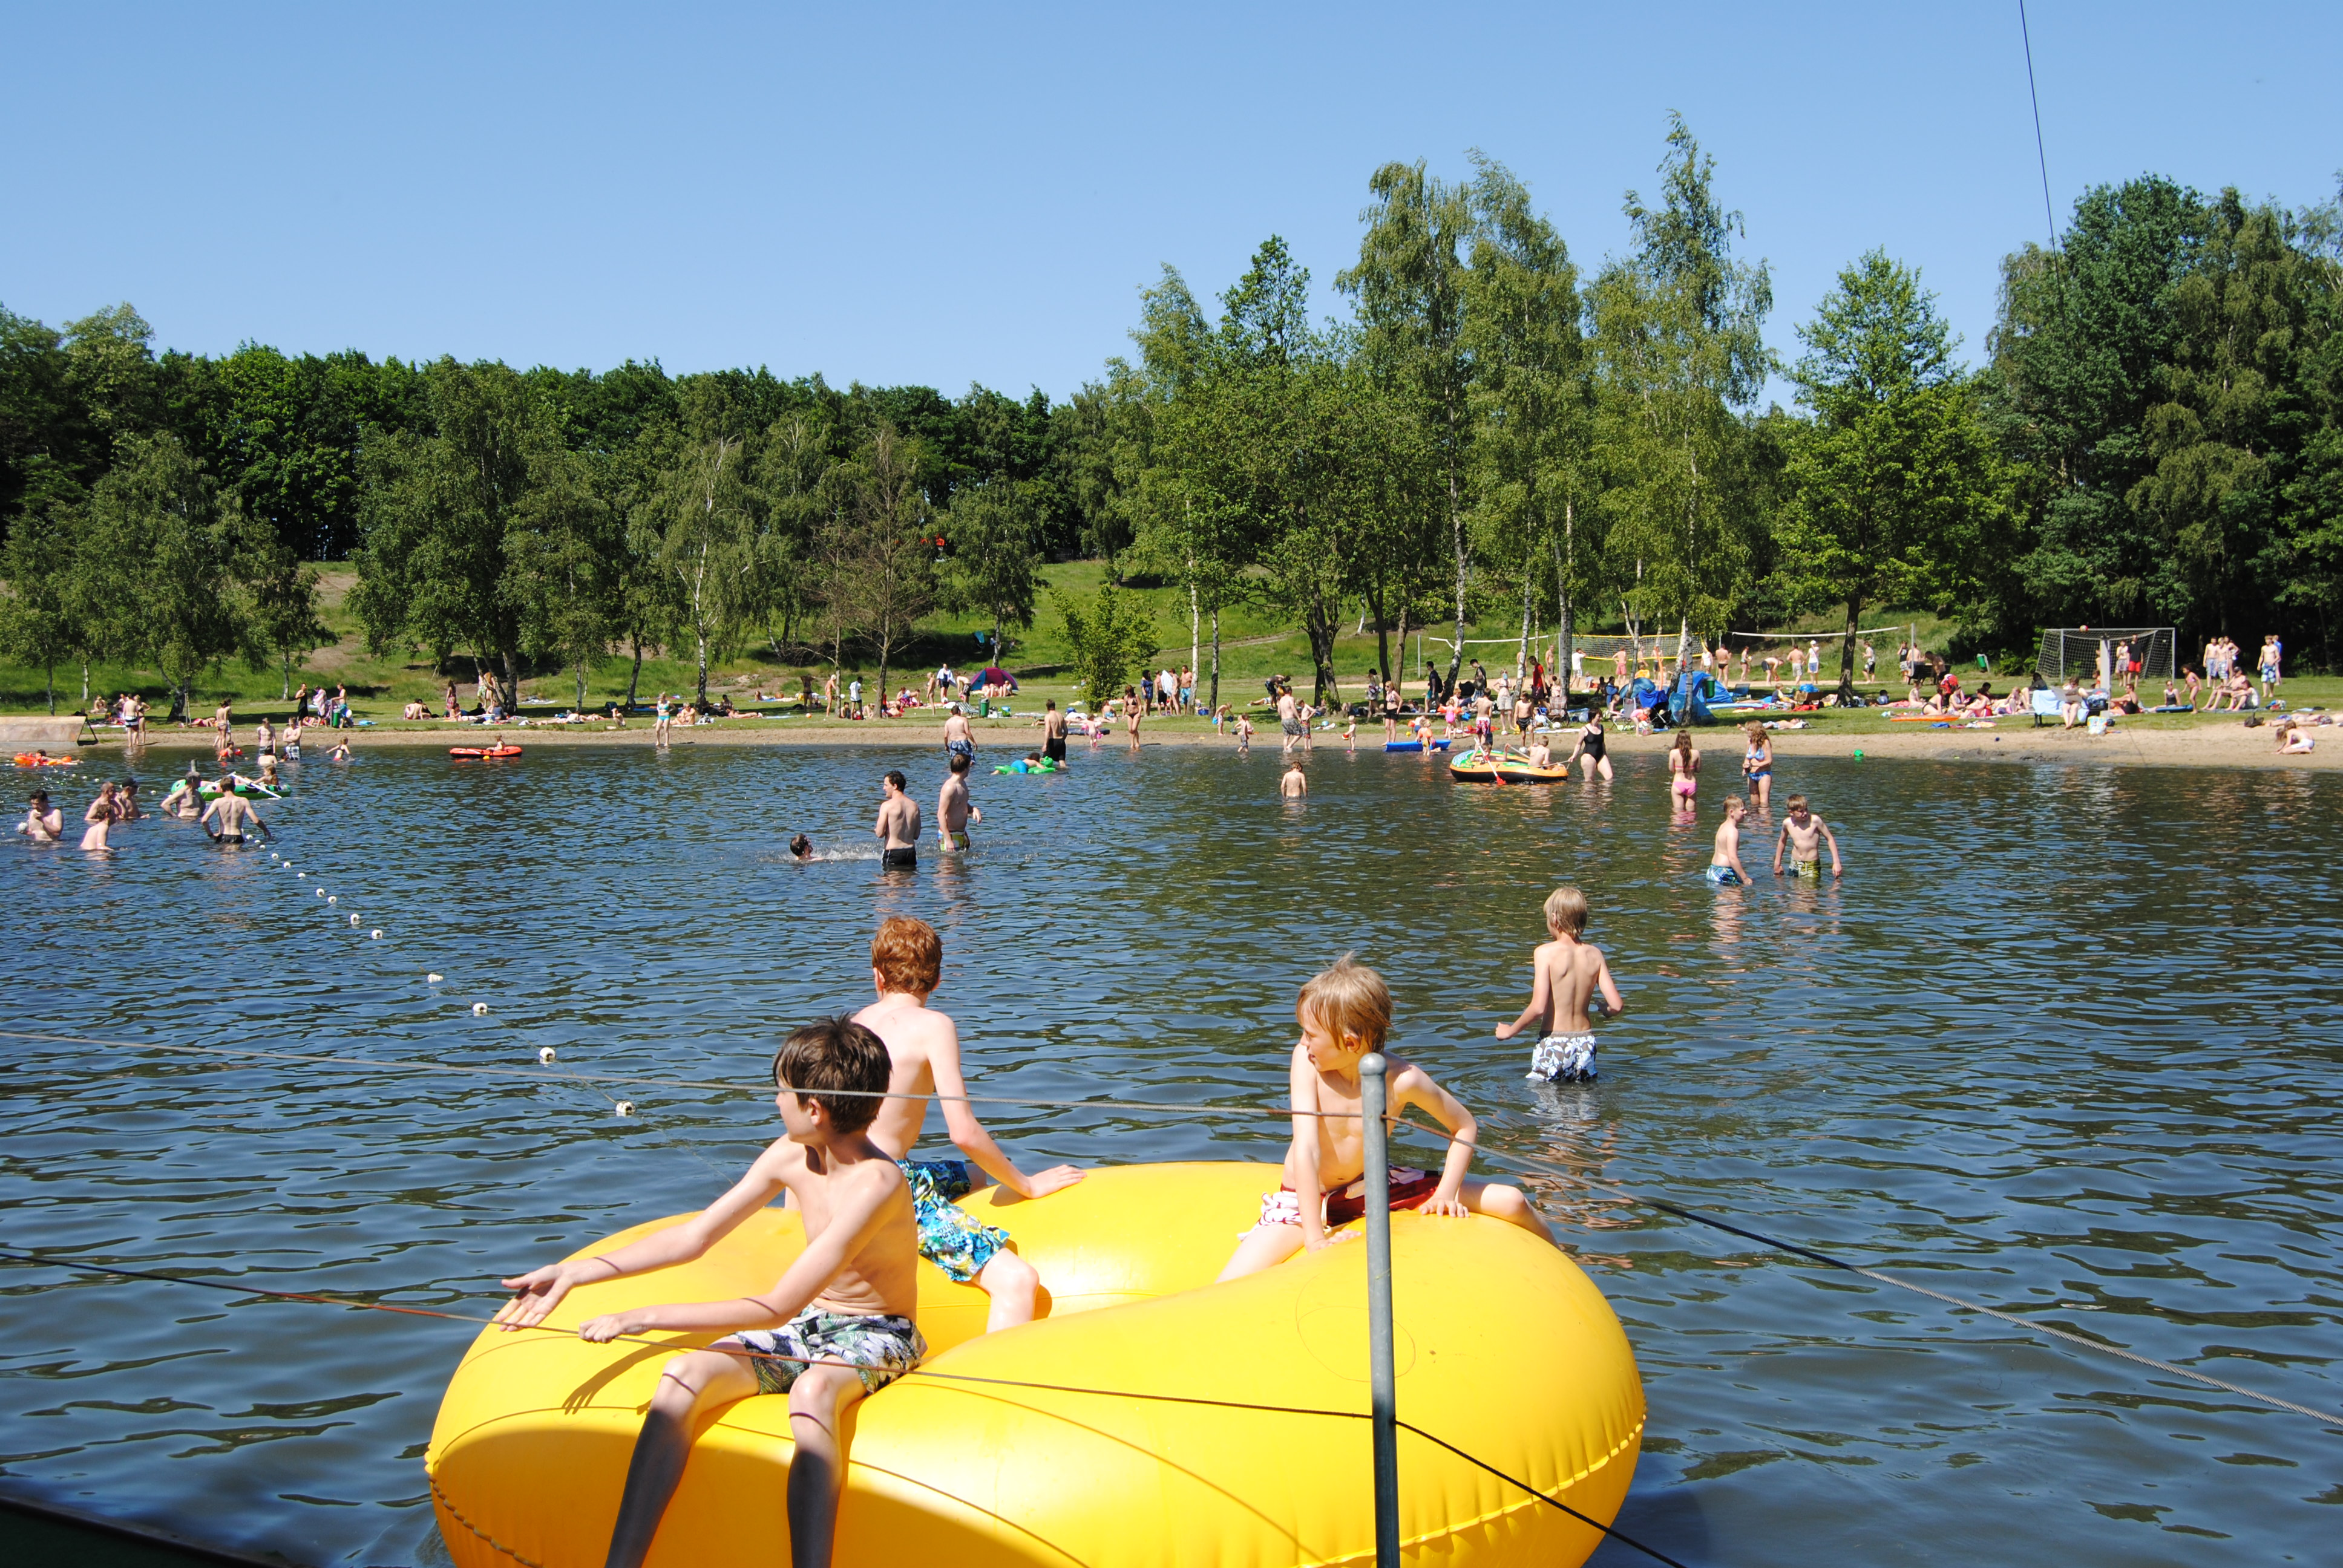 Groot Zwembad Grens Duitsland Camping Duitsland Met Zwembad Duitsland Campings